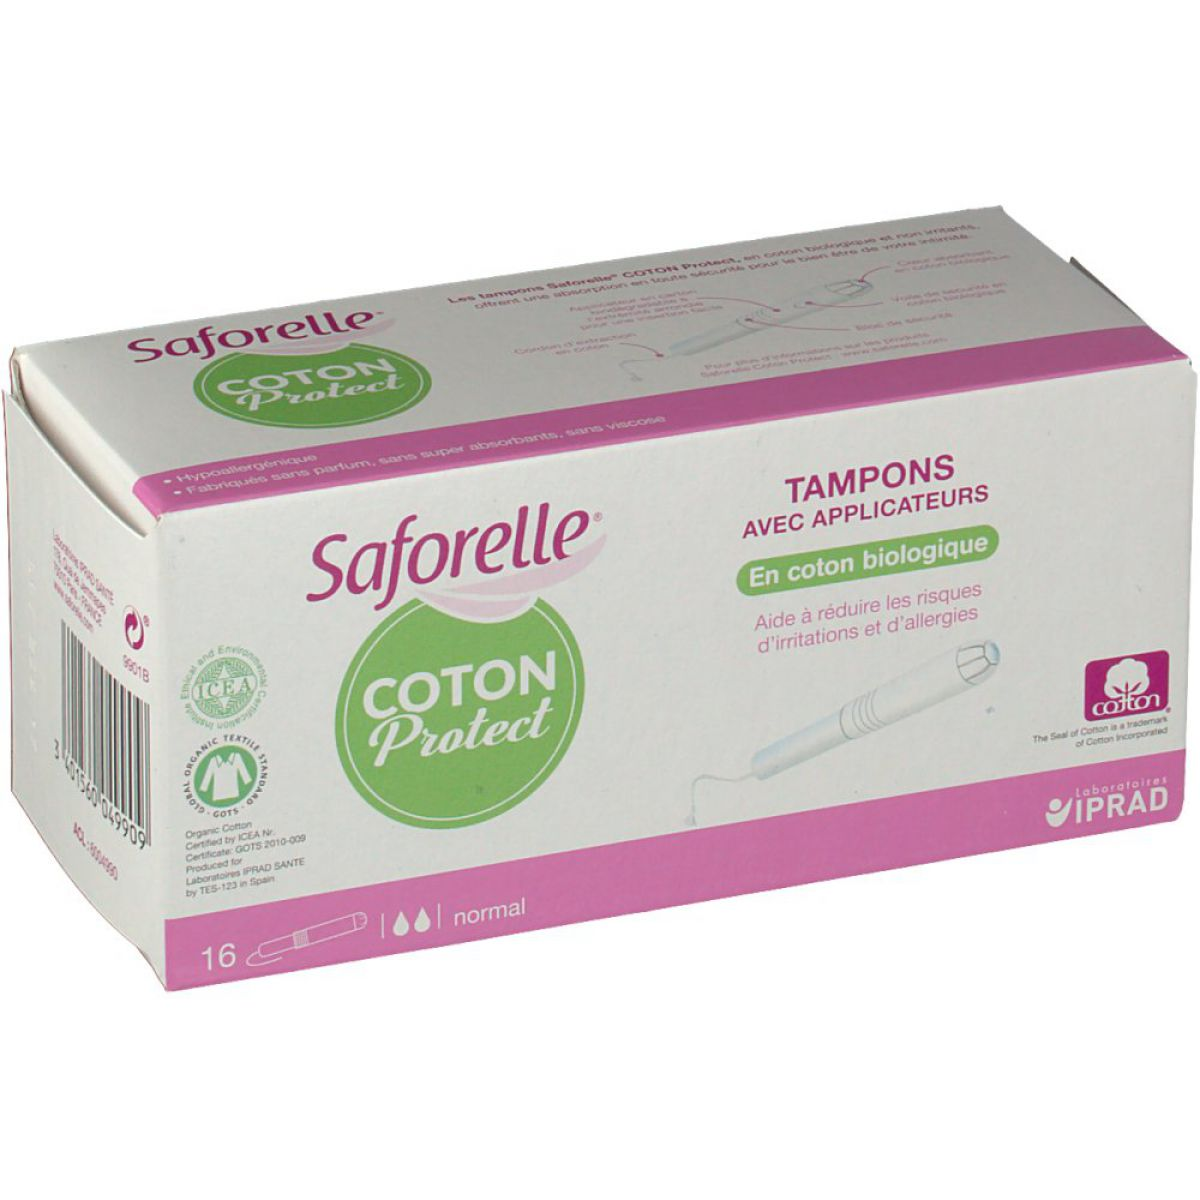 Saforelle - Coton protect - 16 tampons avec applicateurs